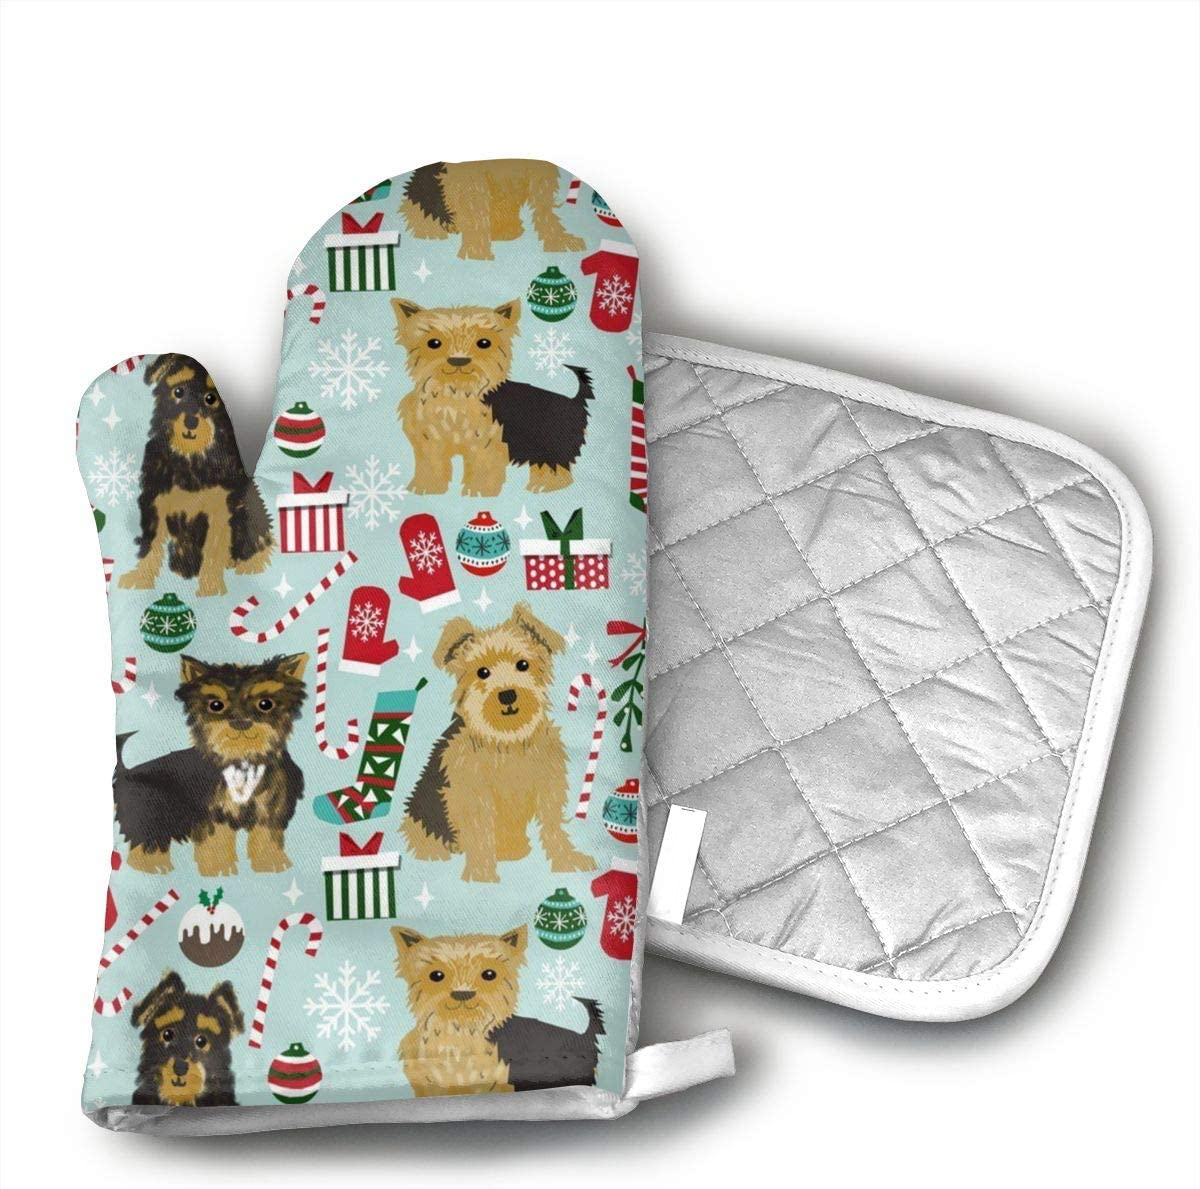 Sjiwqoj8 Yorkie Christmas Kitchen Oven Mitts,Oven Mitts and Pot Holders,Heat Resistant with Quilted Cotton Lining,Cooking,Baking,Grilling,Barbecue